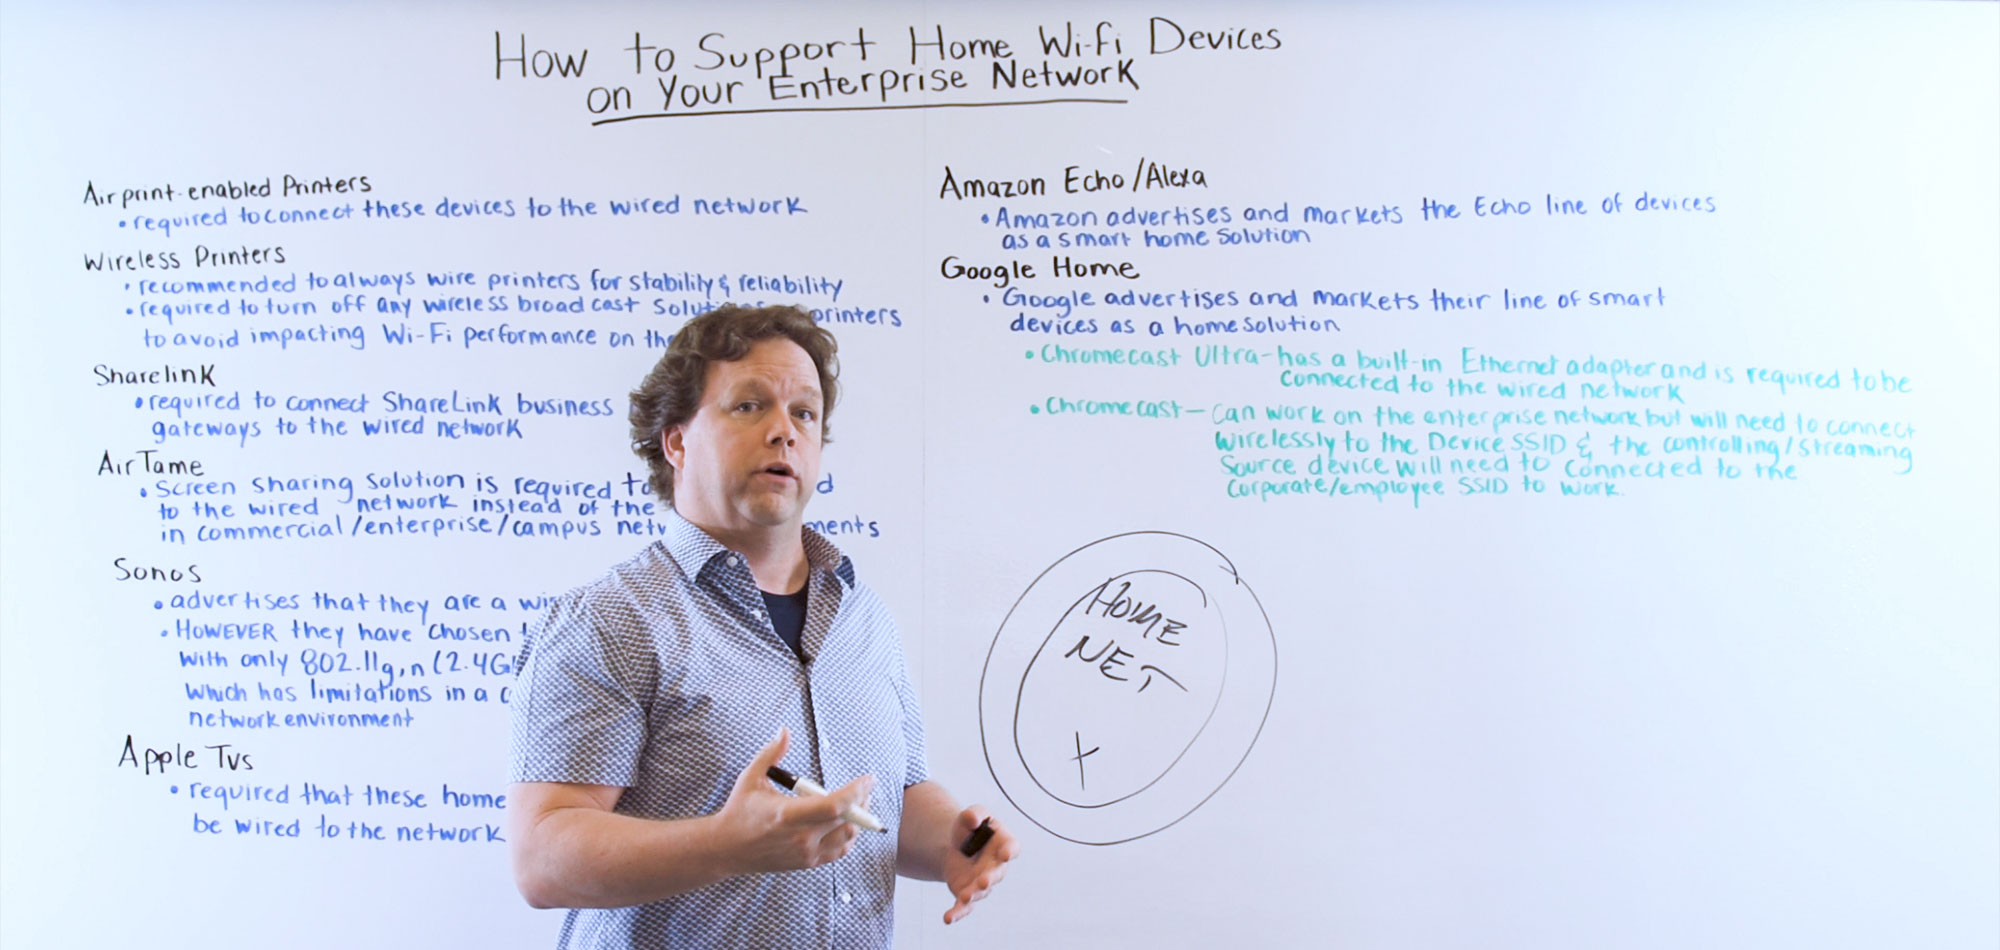 How to Support Home Wi-Fi Devices on Your Enterprise Network